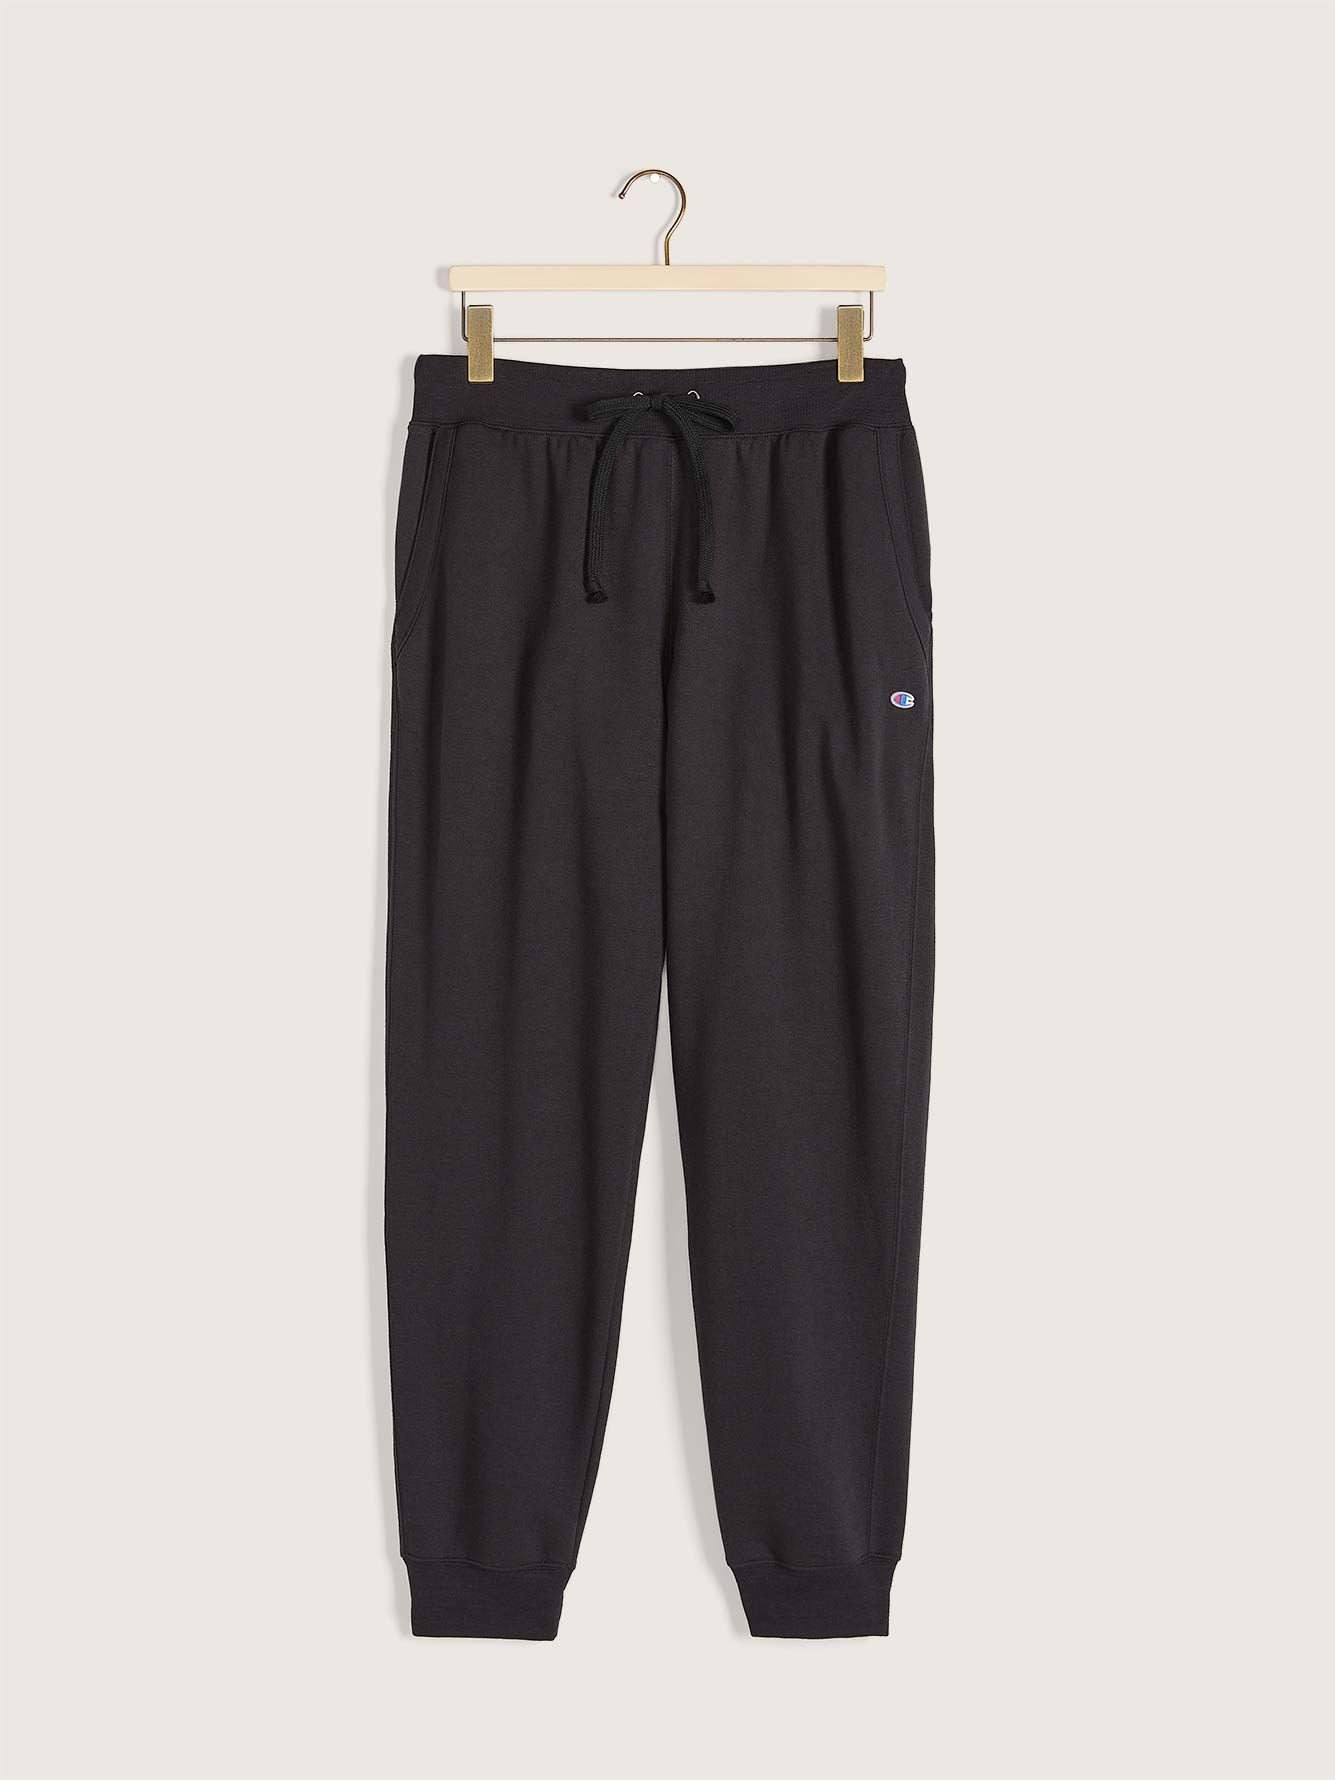 Heritage French Terry Jogger - Champion